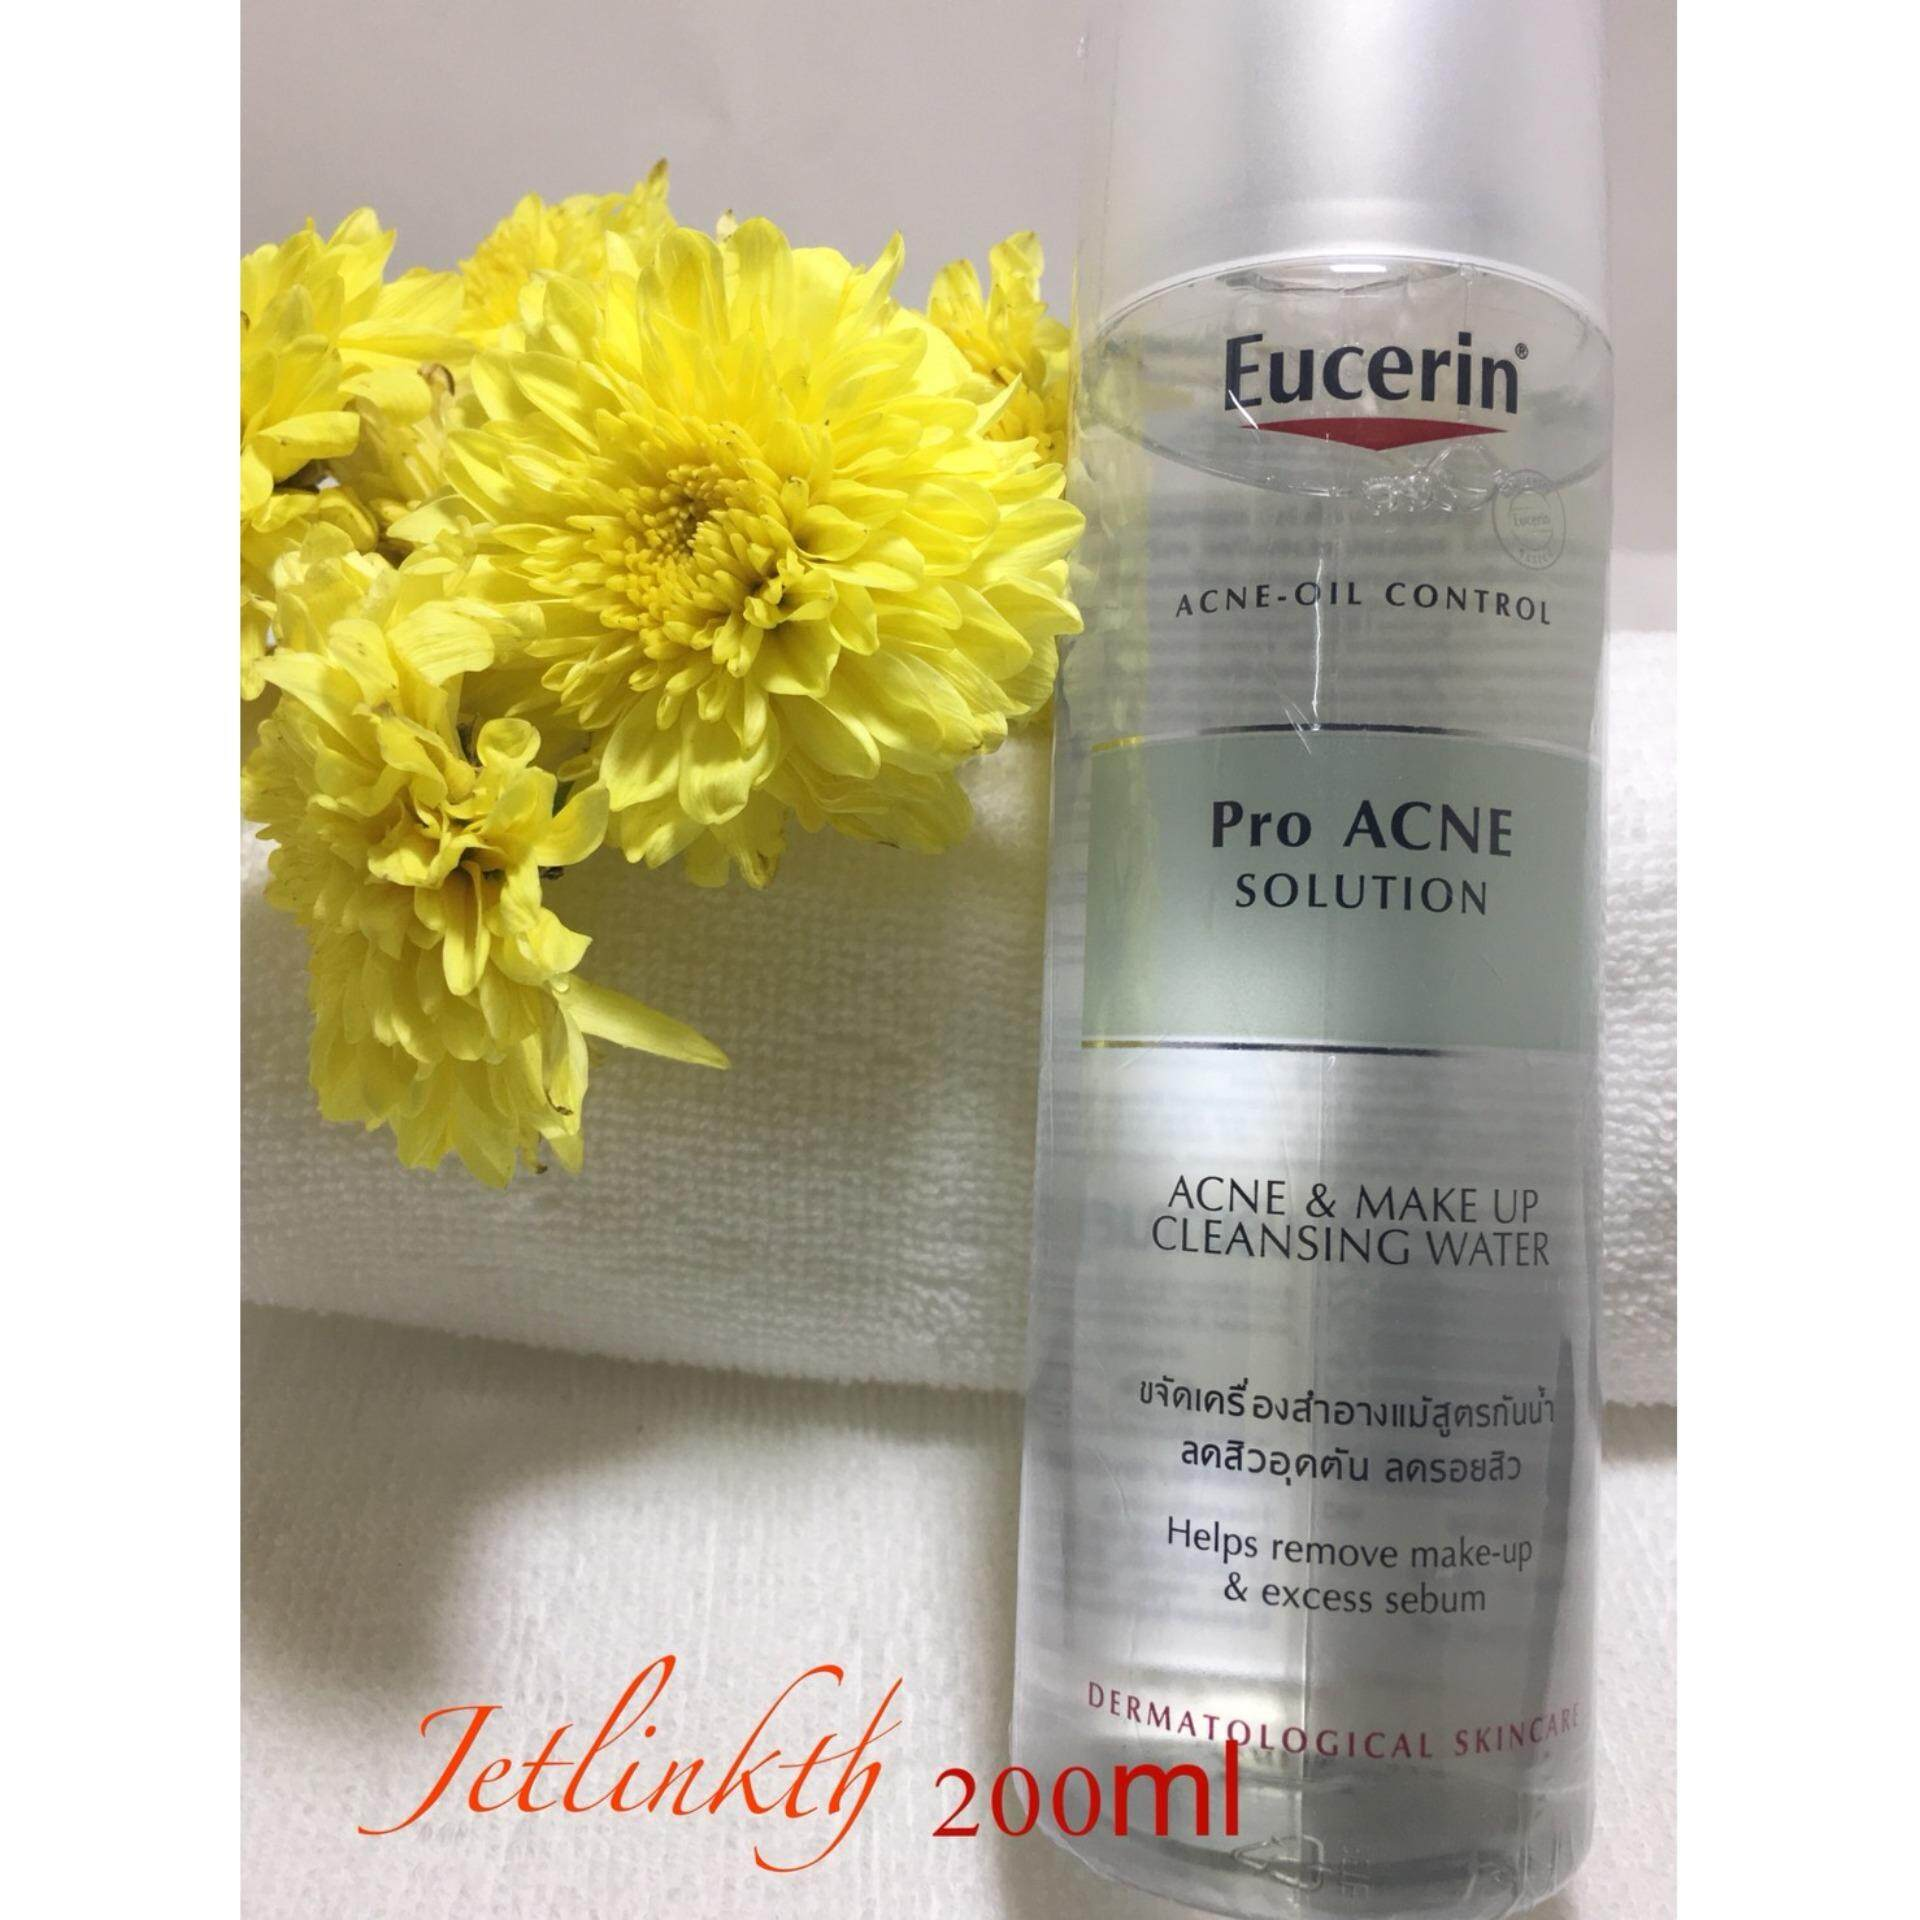 Eucerin Pro Acne Solution Acne&make-Up Cleansing Water 200ml (ตัวสินค้ามีการซีล).